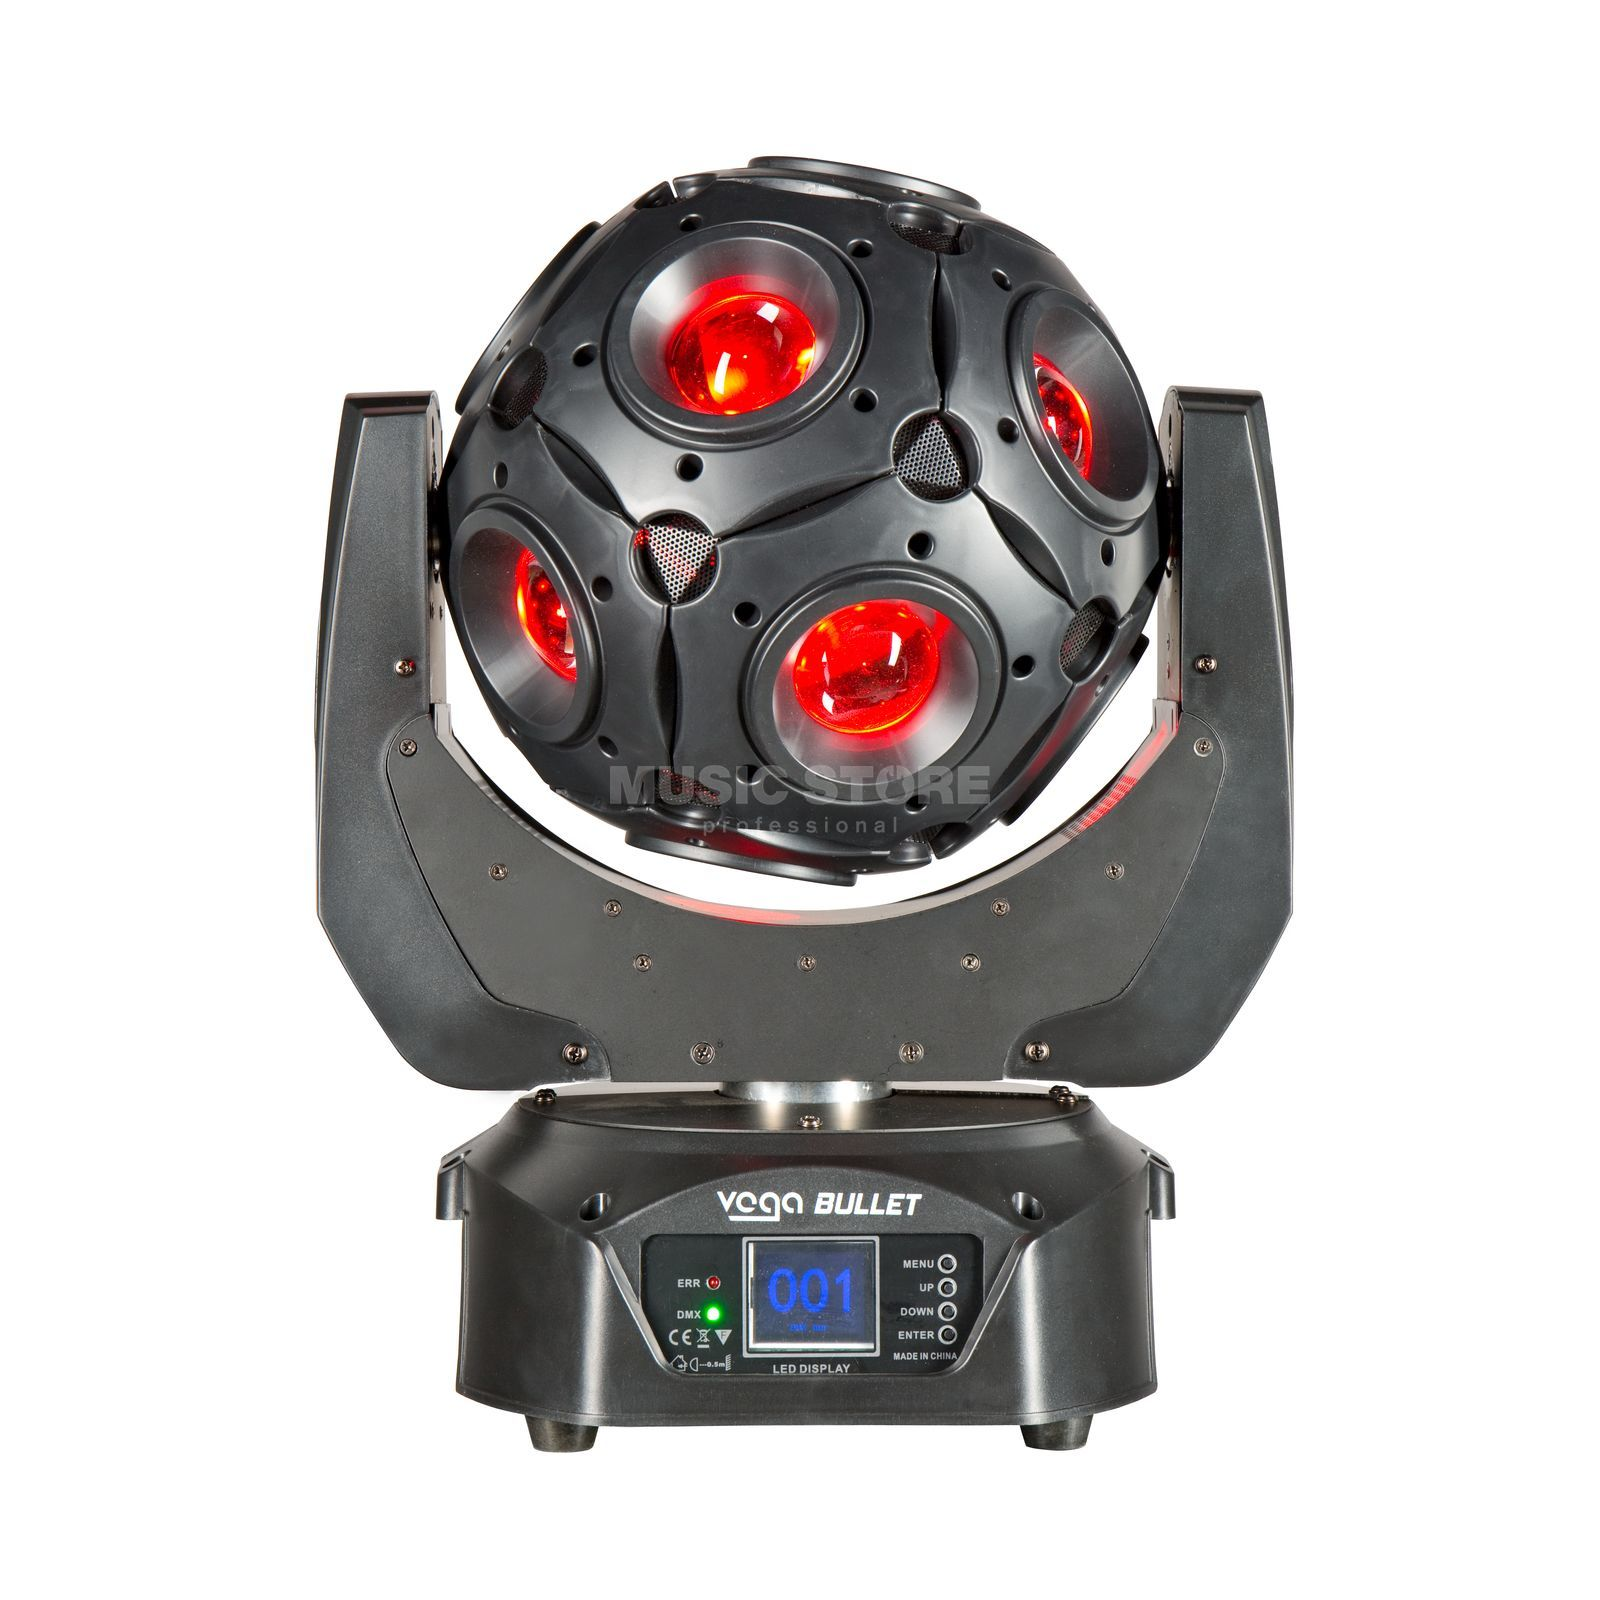 lightmaXX VEGA BULLET 12x10W RGBW CREE LED Product Image